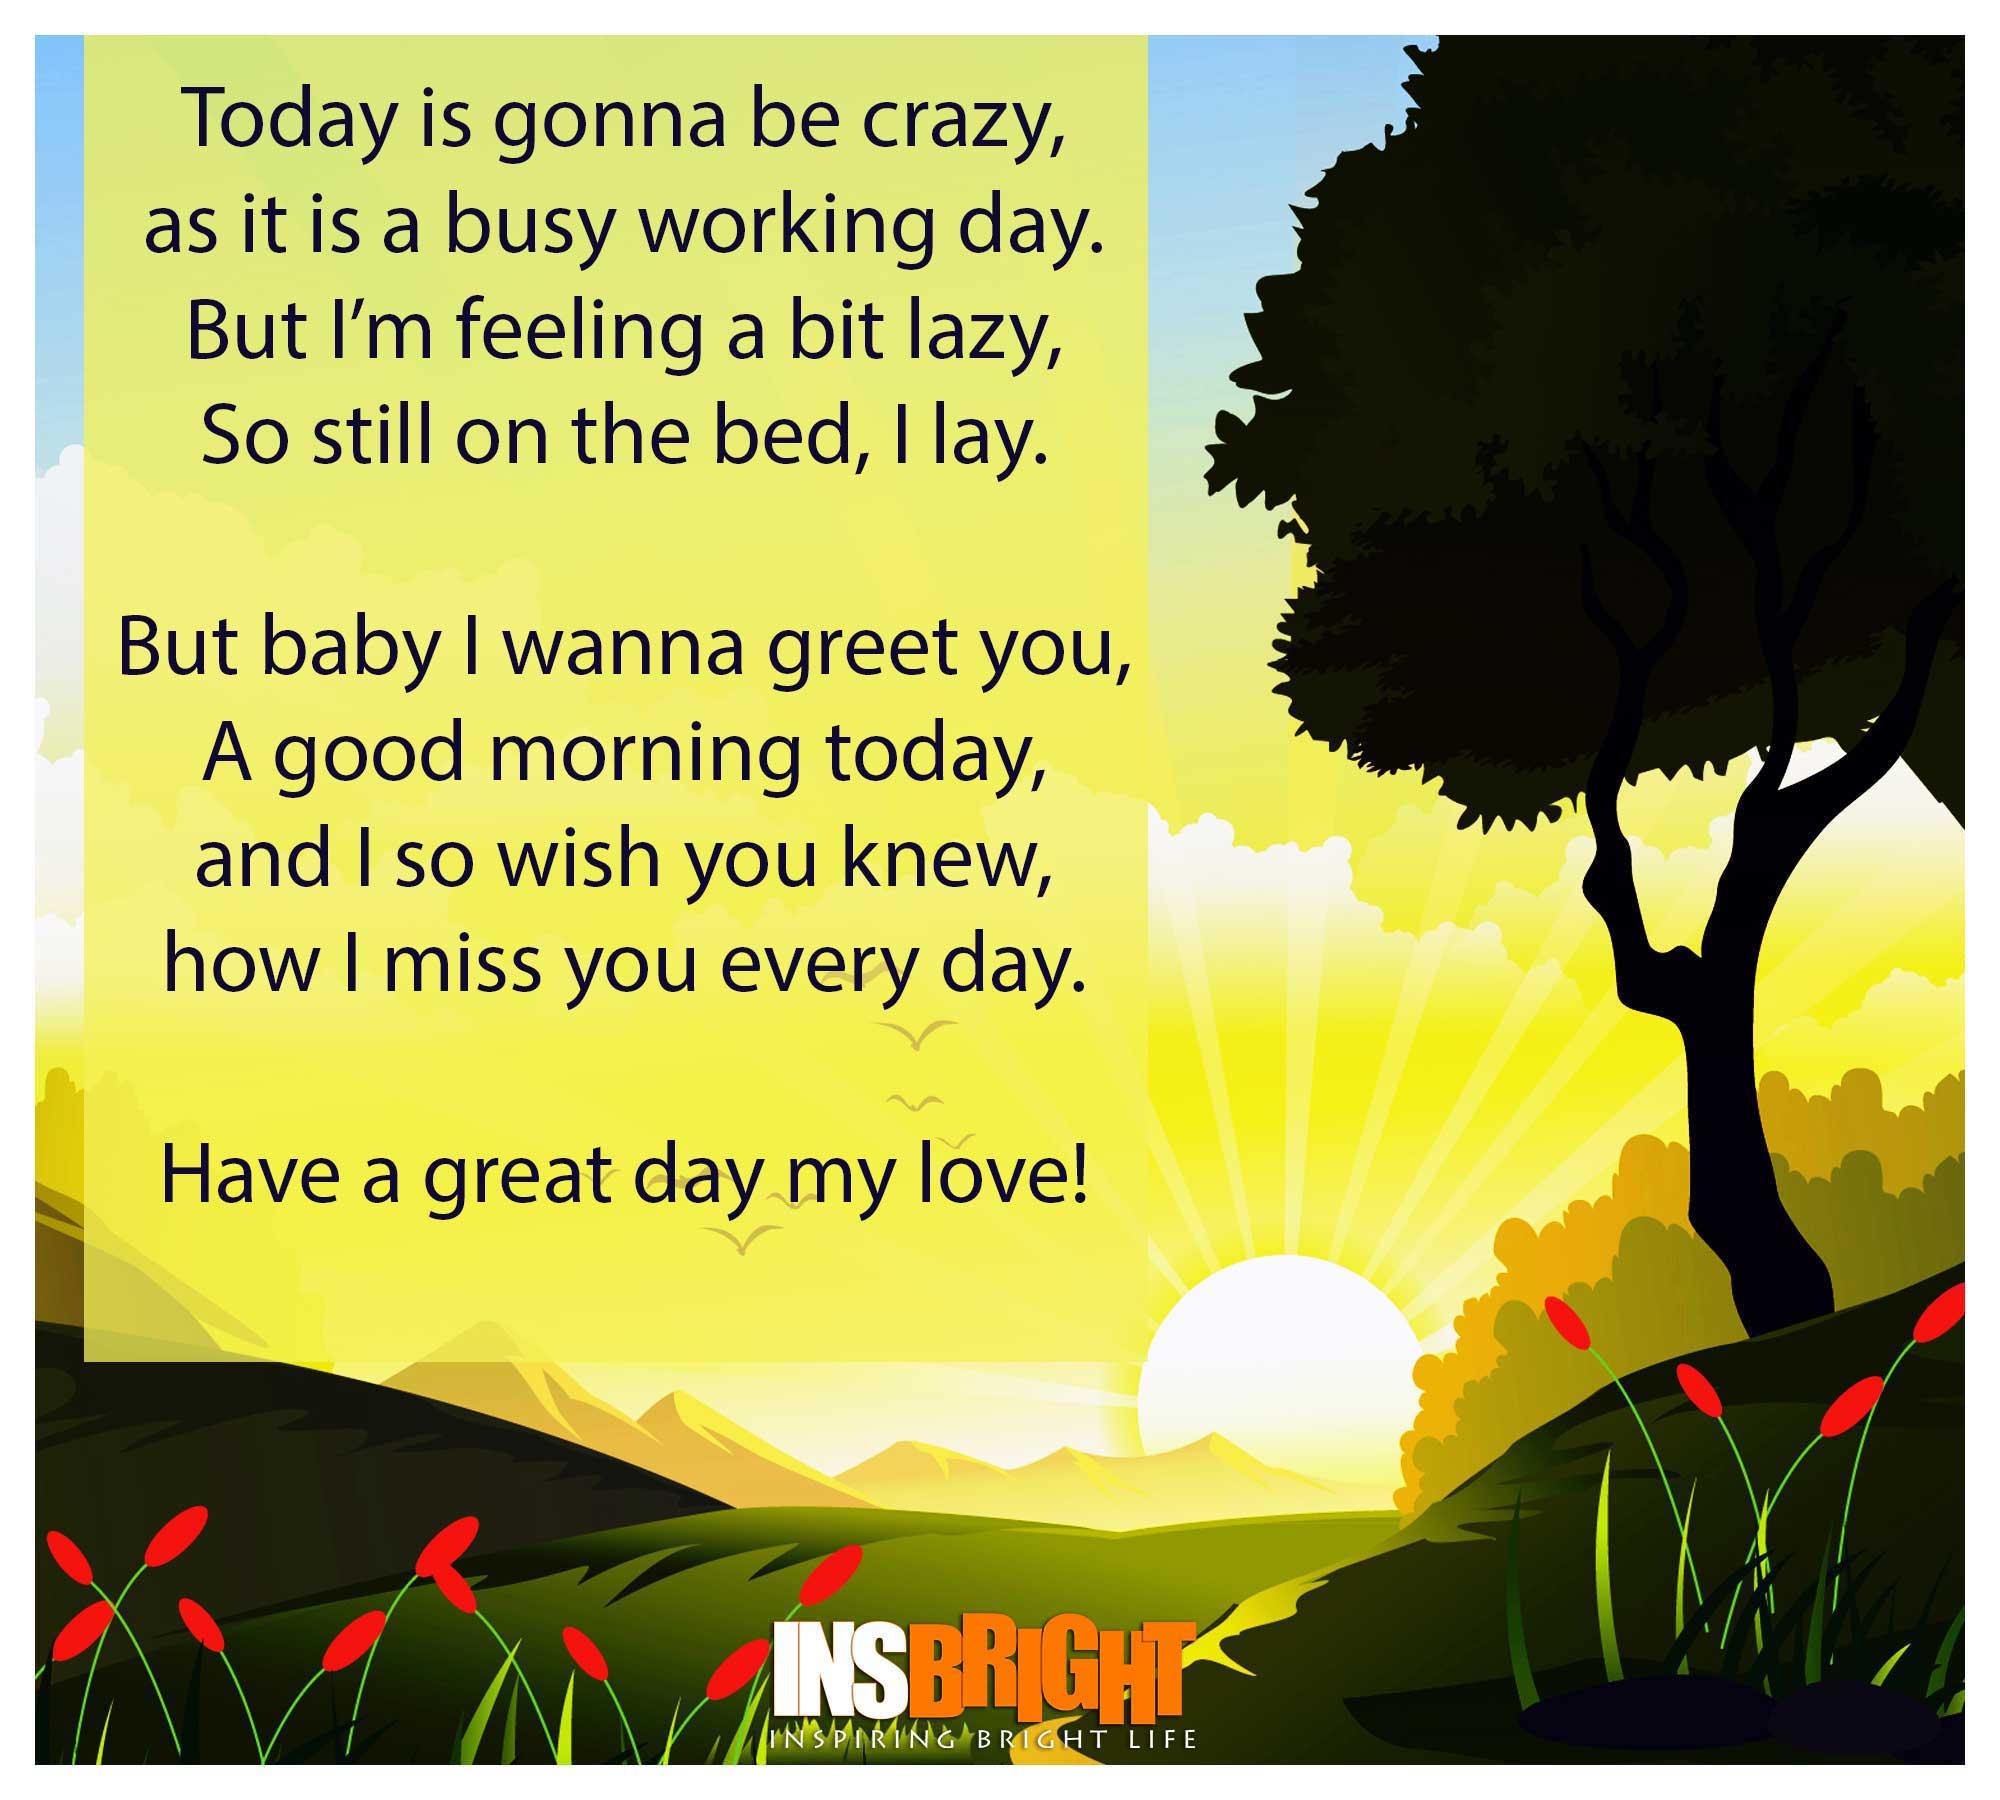 Have a good day poem for her